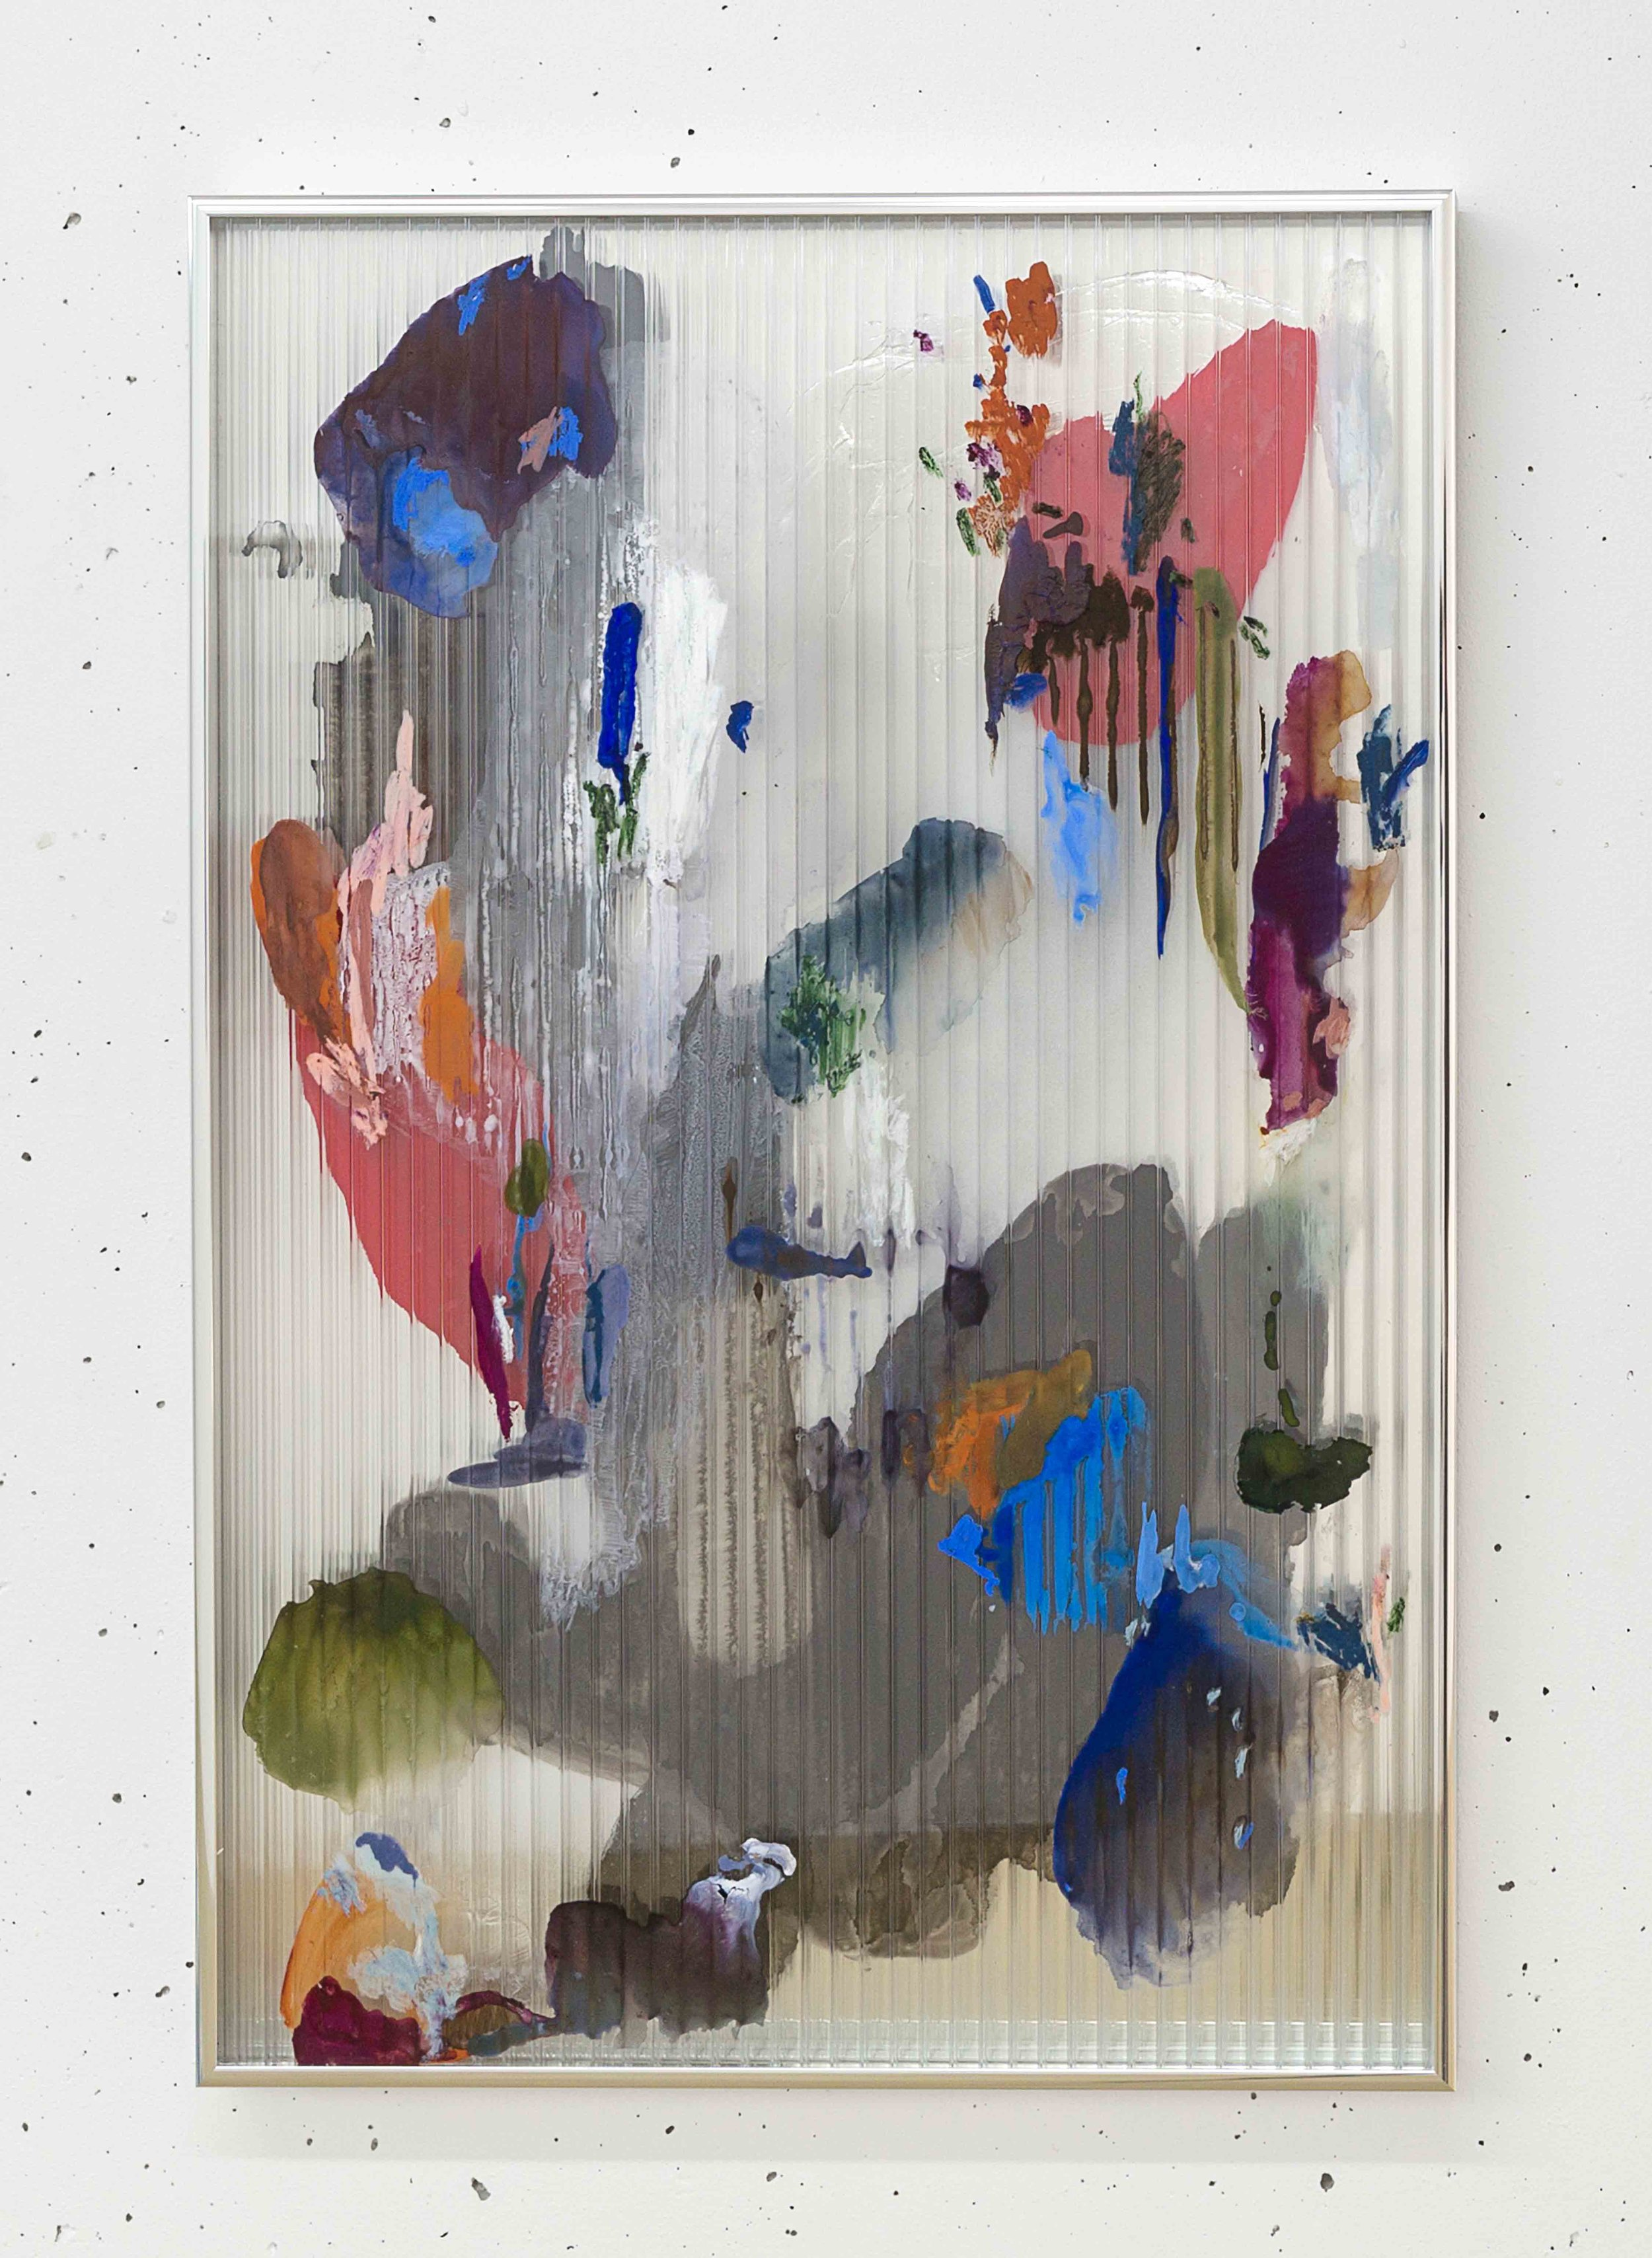 Chaos 2 , 2017 gouache, ink, acrylic, oil, mastic on polycarbonate, mirror, aluminium frame 67 x 44,5 x 2,5 cm  photo © Romain Darnaud    private collection